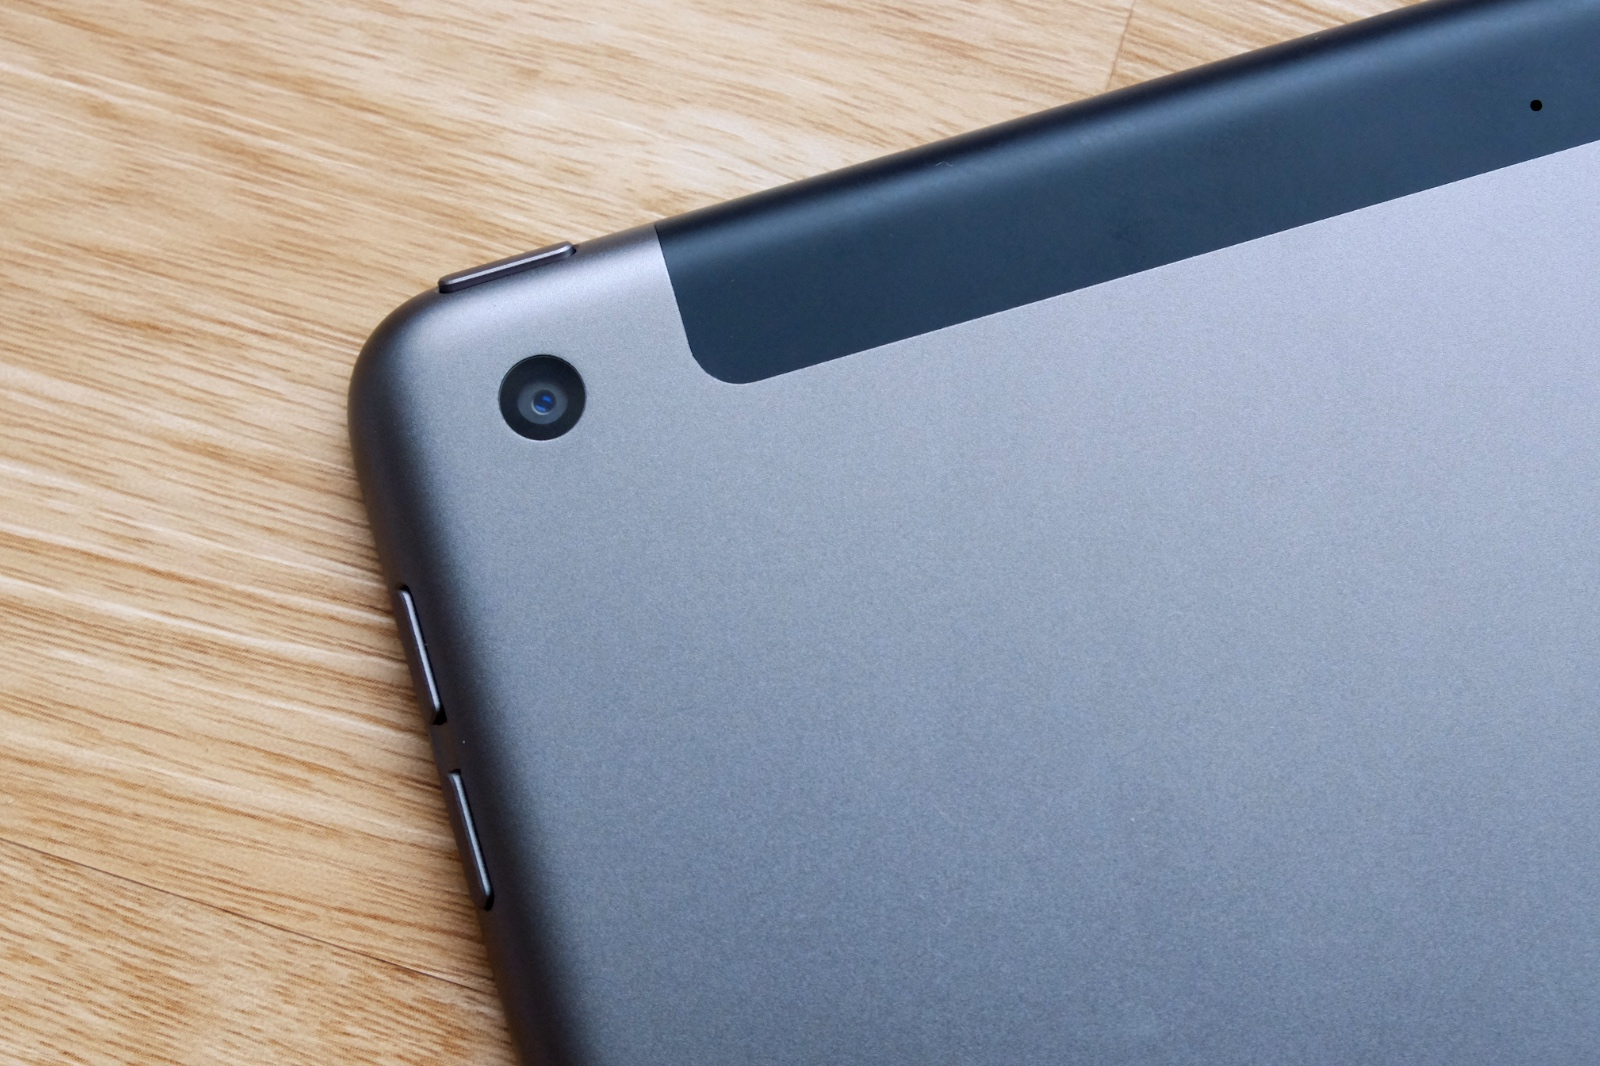 The rear camera is the same 8-megapixel f/2.4 unit as last year.